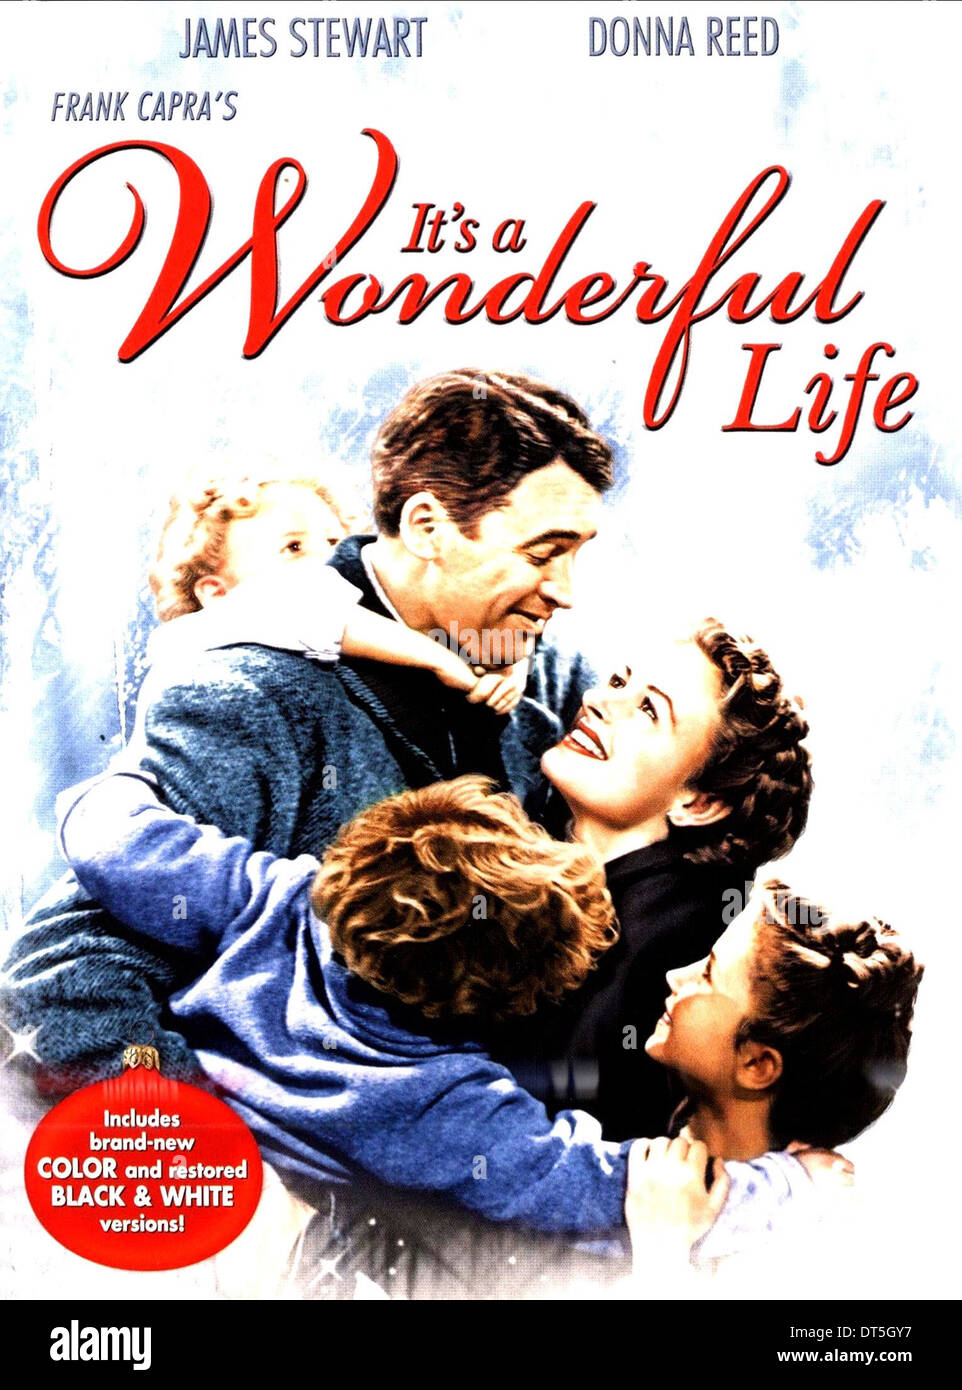 james stewart amp donna reed poster its a wonderful life